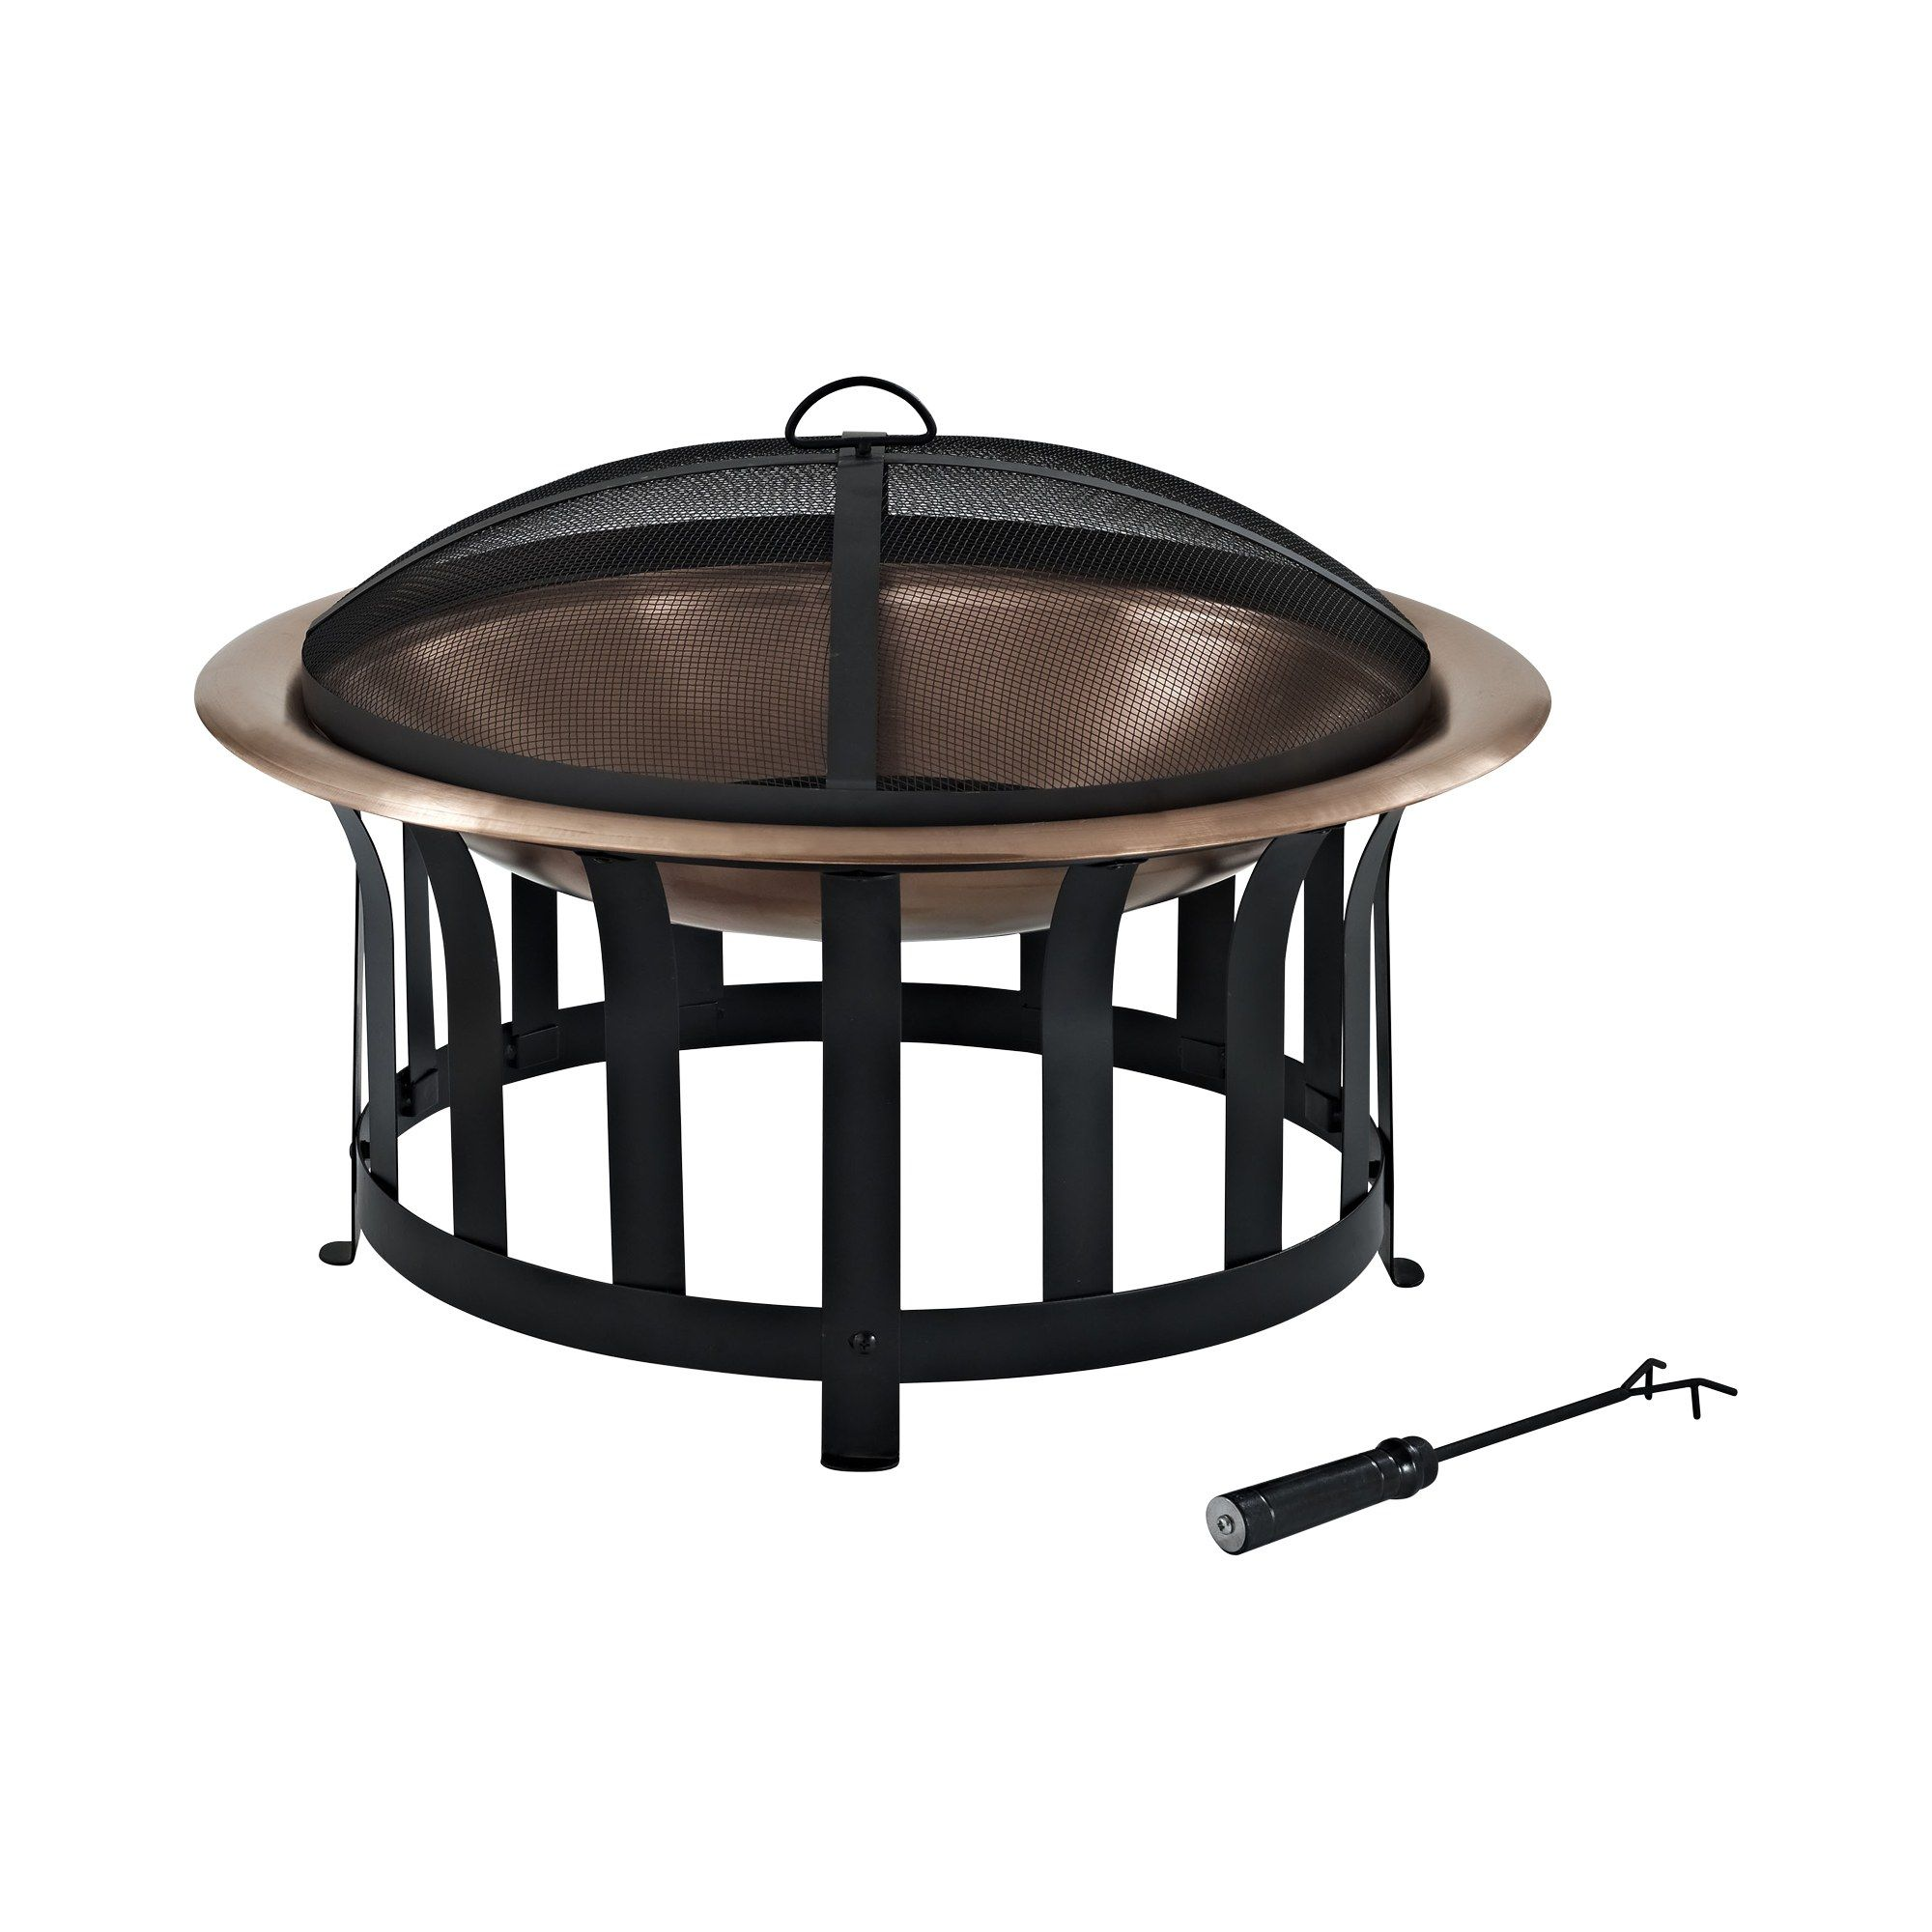 12 outdoor fire pits made for entertaining photos outdoor fire